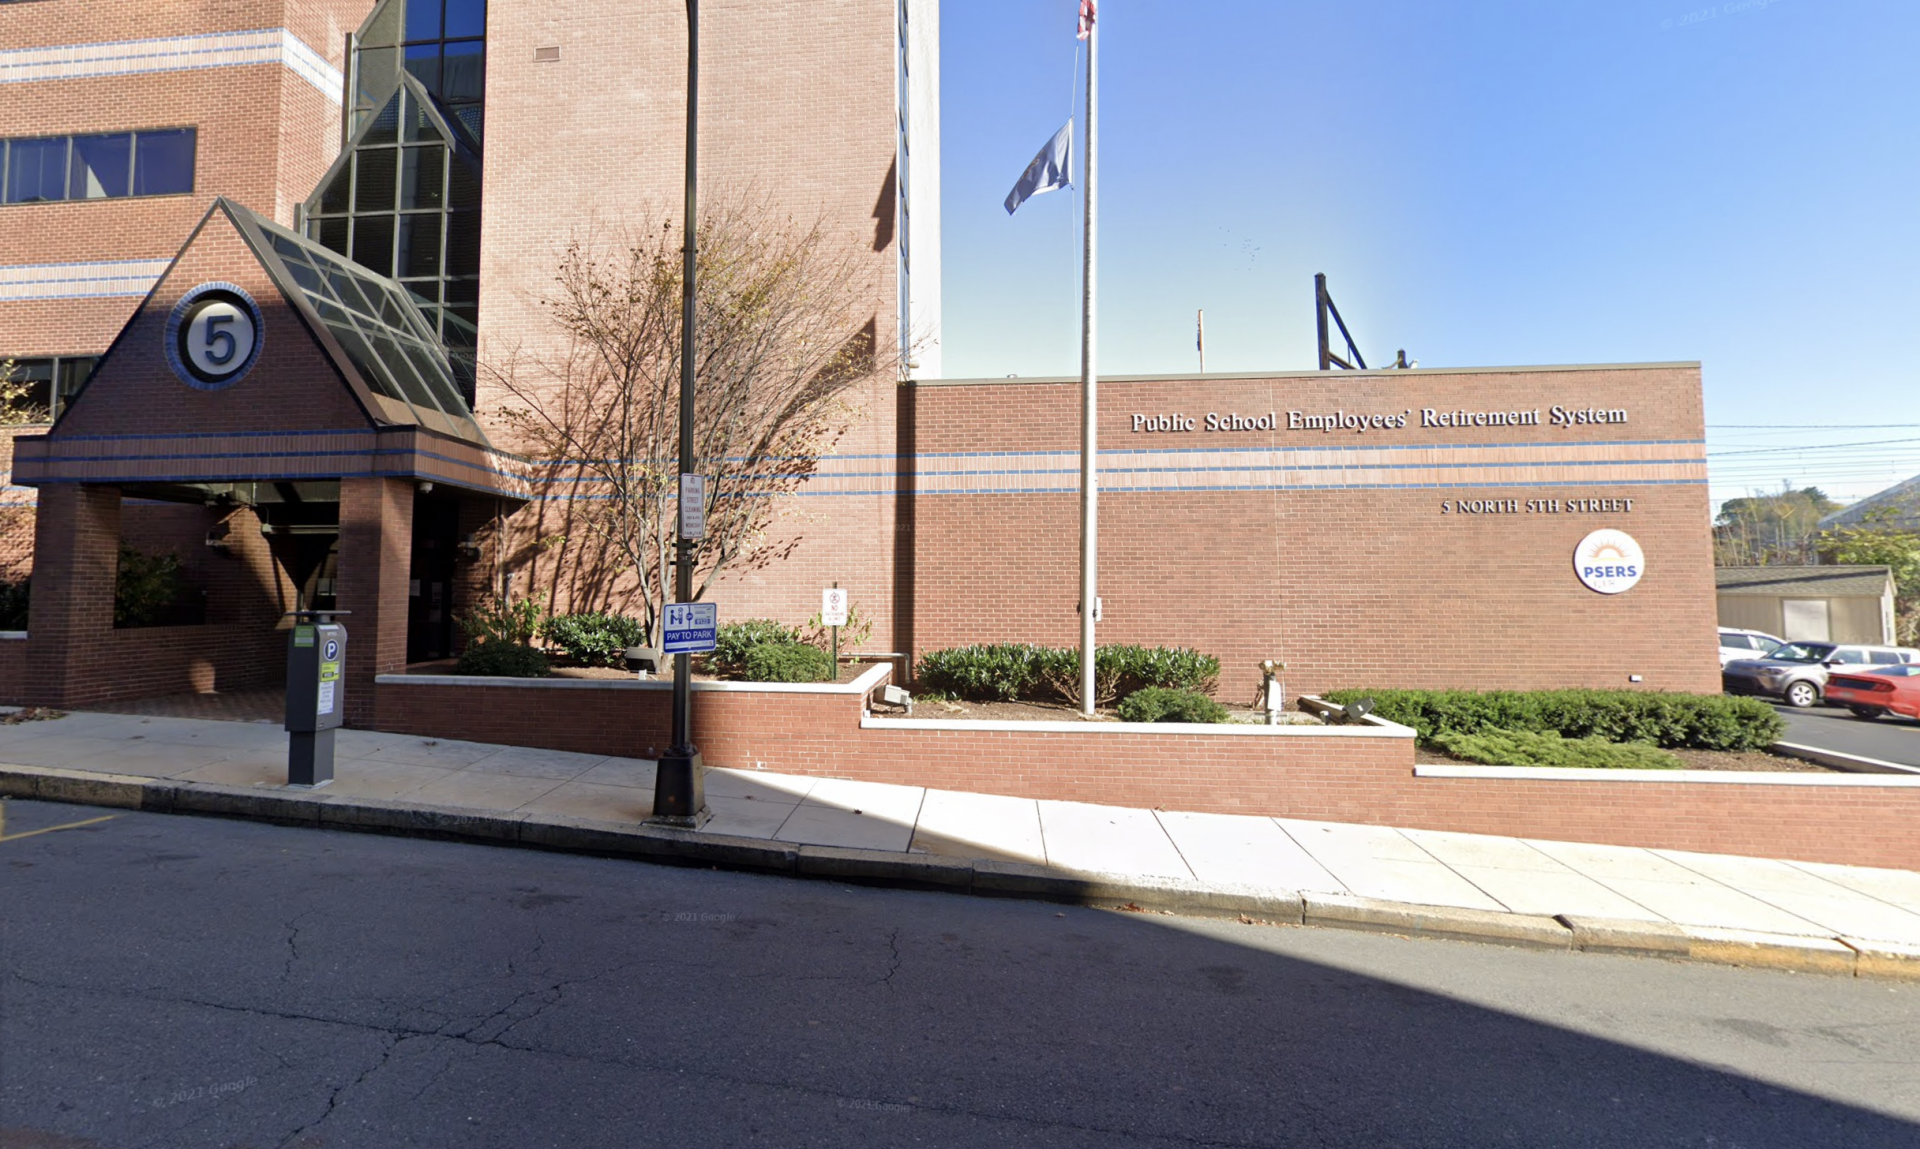 The headquarters of Pennsylvania's Public School Employees' Retirement System (PSERS) is seen at 5 N. 5th St. in Harrisburg.